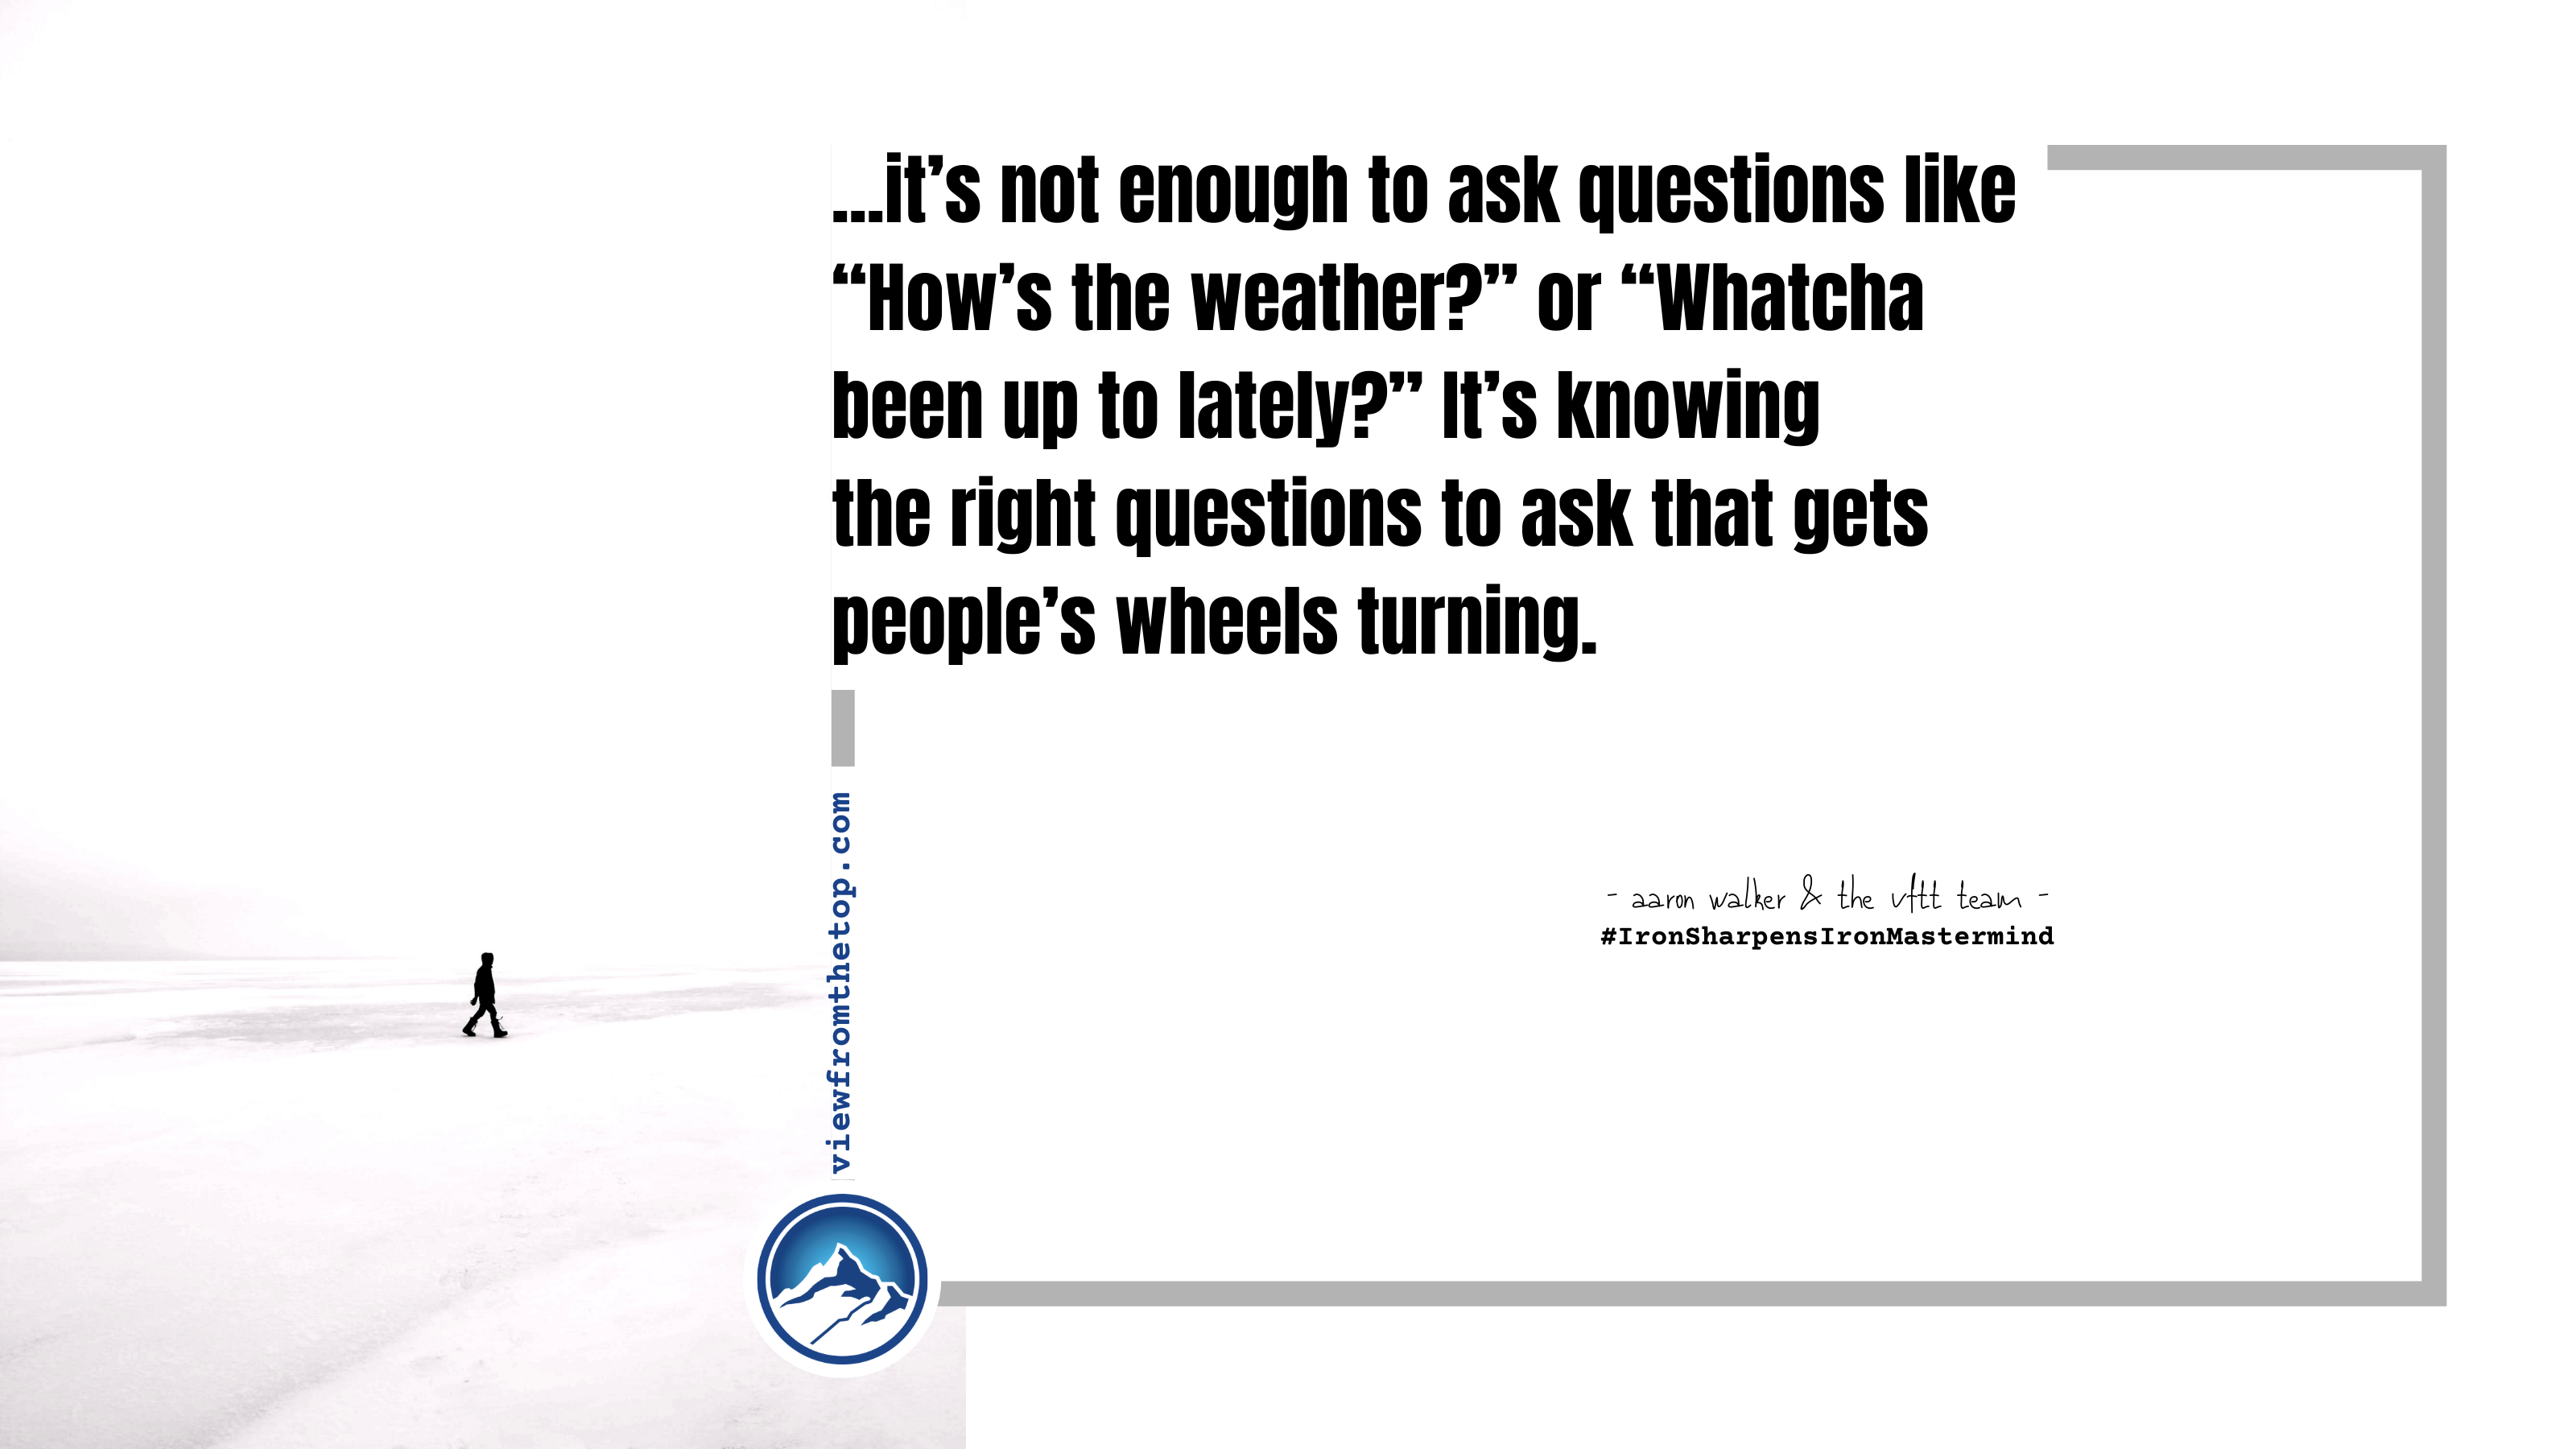 """it's not enough to ask questions like """"How's the weather_"""" or """"Whatcha been up to lately_"""" It's knowing the right questions to ask that gets people's wheels turning."""